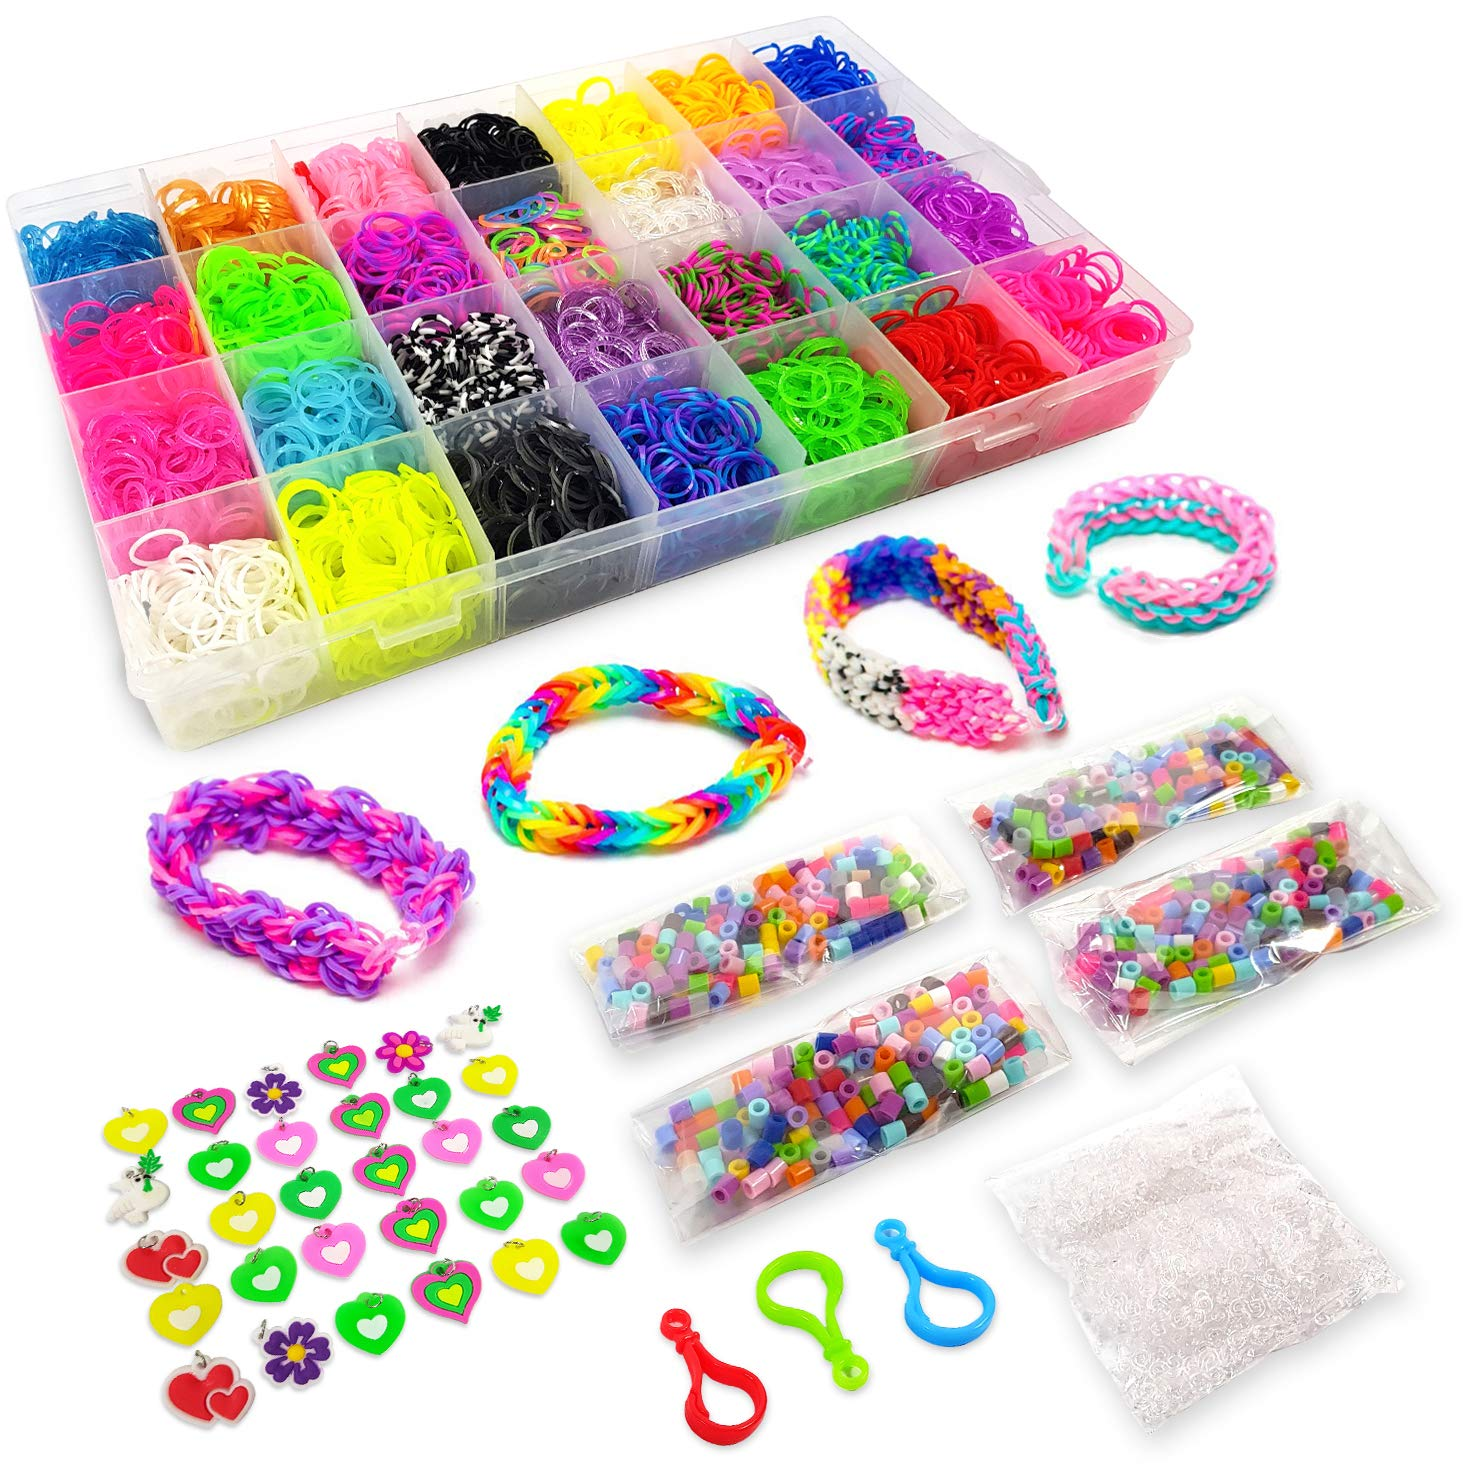 11500+ Rainbow Loom Bands Mega Refill Kit – Rubber Band Bracelet Kit for Kids – 10500 Premium Crazy Loom Rubber Bands, 30 Charms, 5 Hooks, 250 Beads, 550 Clips – DIY Crafts Making Bracelets 42 Colors